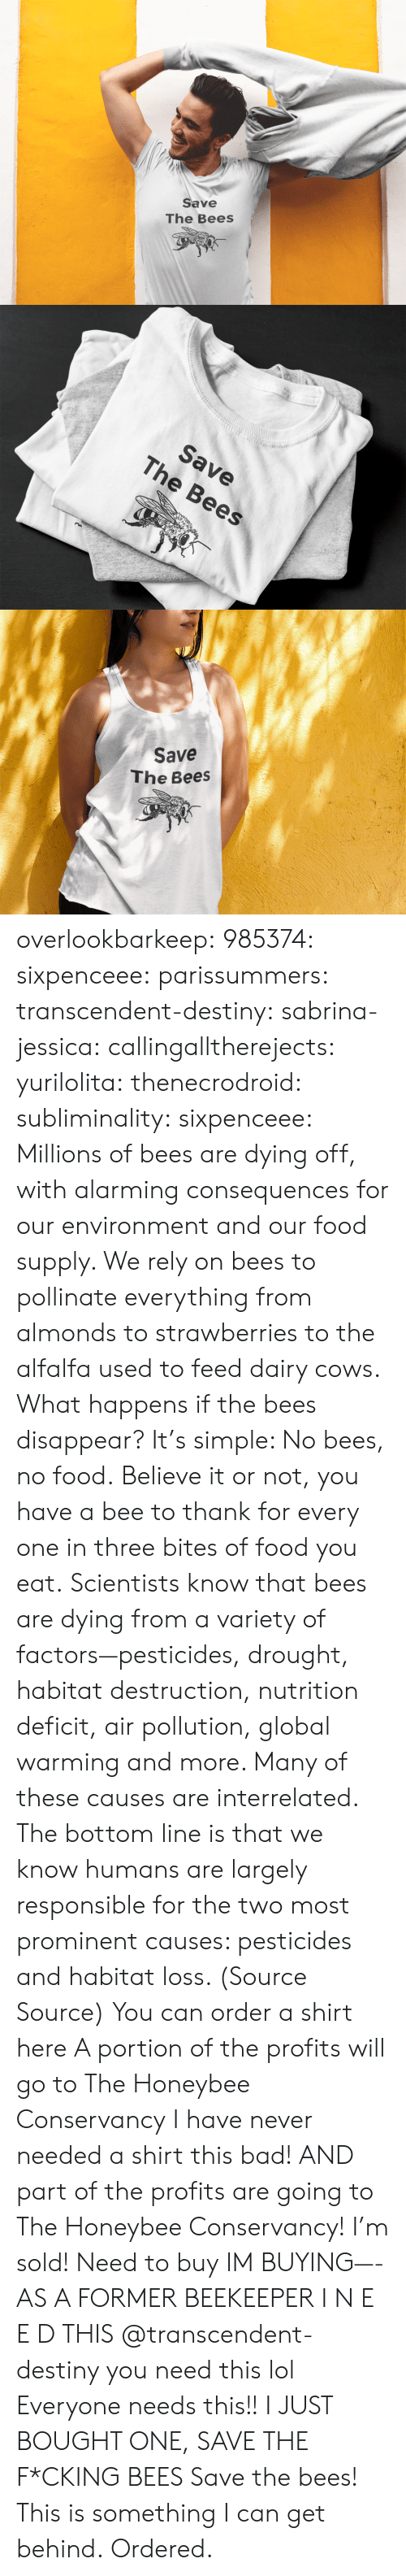 Bad, Destiny, and Food: Save  The Bees   Save  The Bees   Save  The Bees overlookbarkeep: 985374:  sixpenceee:  parissummers:  transcendent-destiny:  sabrina-jessica:   callingalltherejects:  yurilolita:  thenecrodroid:  subliminality:   sixpenceee:   Millions of bees are dying off, with alarming consequences for our environment and our food supply. We rely on bees to pollinate everything from almonds to strawberries to the alfalfa used to feed dairy cows. What happens if the bees disappear? It's simple: No bees, no food.Believe it or not, you have a bee to thank for every one in three bites of food you eat. Scientists know that bees are dying from a variety of factors—pesticides, drought, habitat destruction, nutrition deficit, air pollution, global warming and more. Many of these causes are interrelated. The bottom line is that we know humans are largely responsible for the two most prominent causes: pesticides and habitat loss. (Source  Source) You can order a shirt here A portion of the profits will go toThe Honeybee Conservancy   I have never needed a shirt this bad! AND part of the profits are going to The Honeybee Conservancy! I'm sold!   Need to buy   IM BUYING—-   AS A FORMER BEEKEEPER I N E E D THIS   @transcendent-destiny you need this lol  Everyone needs this!!   I JUST BOUGHT ONE, SAVE THE F*CKING BEES  Save the bees!  This is something I can get behind.   Ordered.